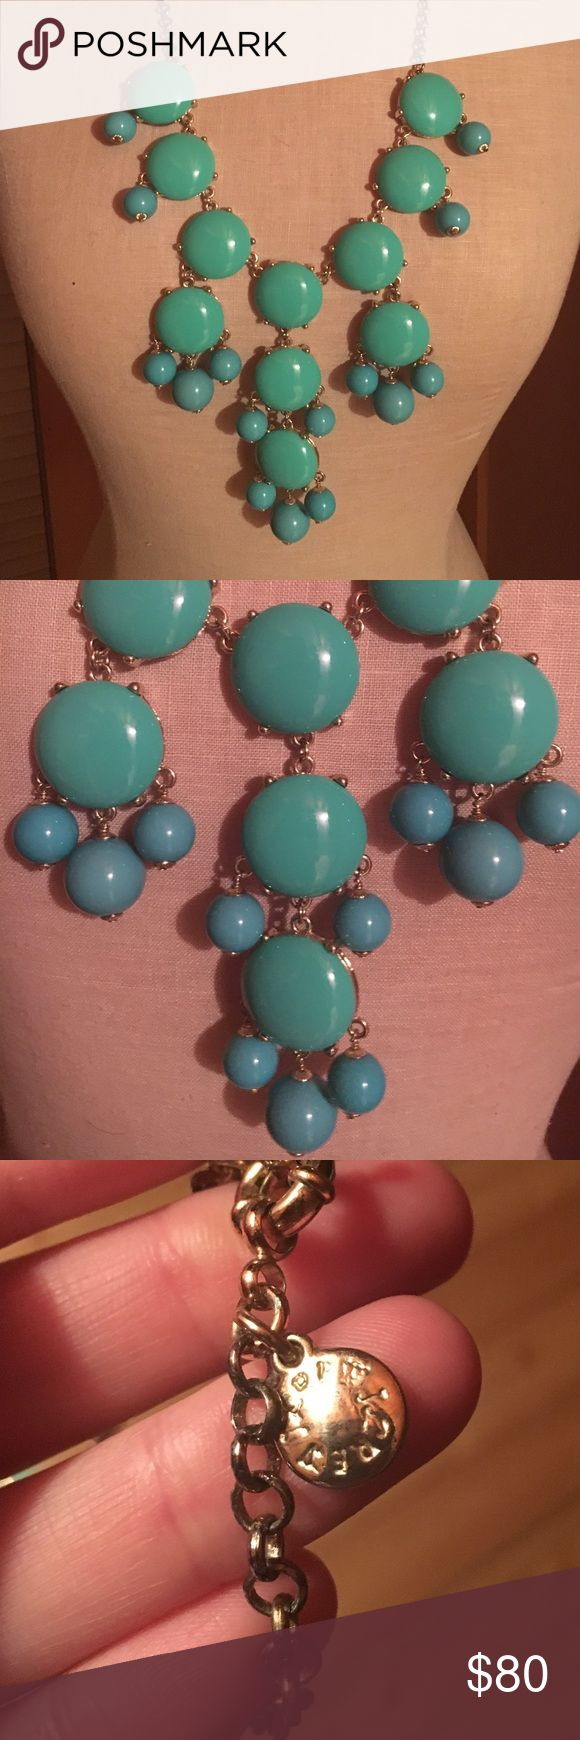 JCrew Turquoise Bubble Necklace The stunning, ORIGINAL bubble necklace by JCrew. Turquoise stones and plated with 18K gold. Worn once, excellent condition. Comes with original box. No trades please. J. Crew Jewelry Necklaces